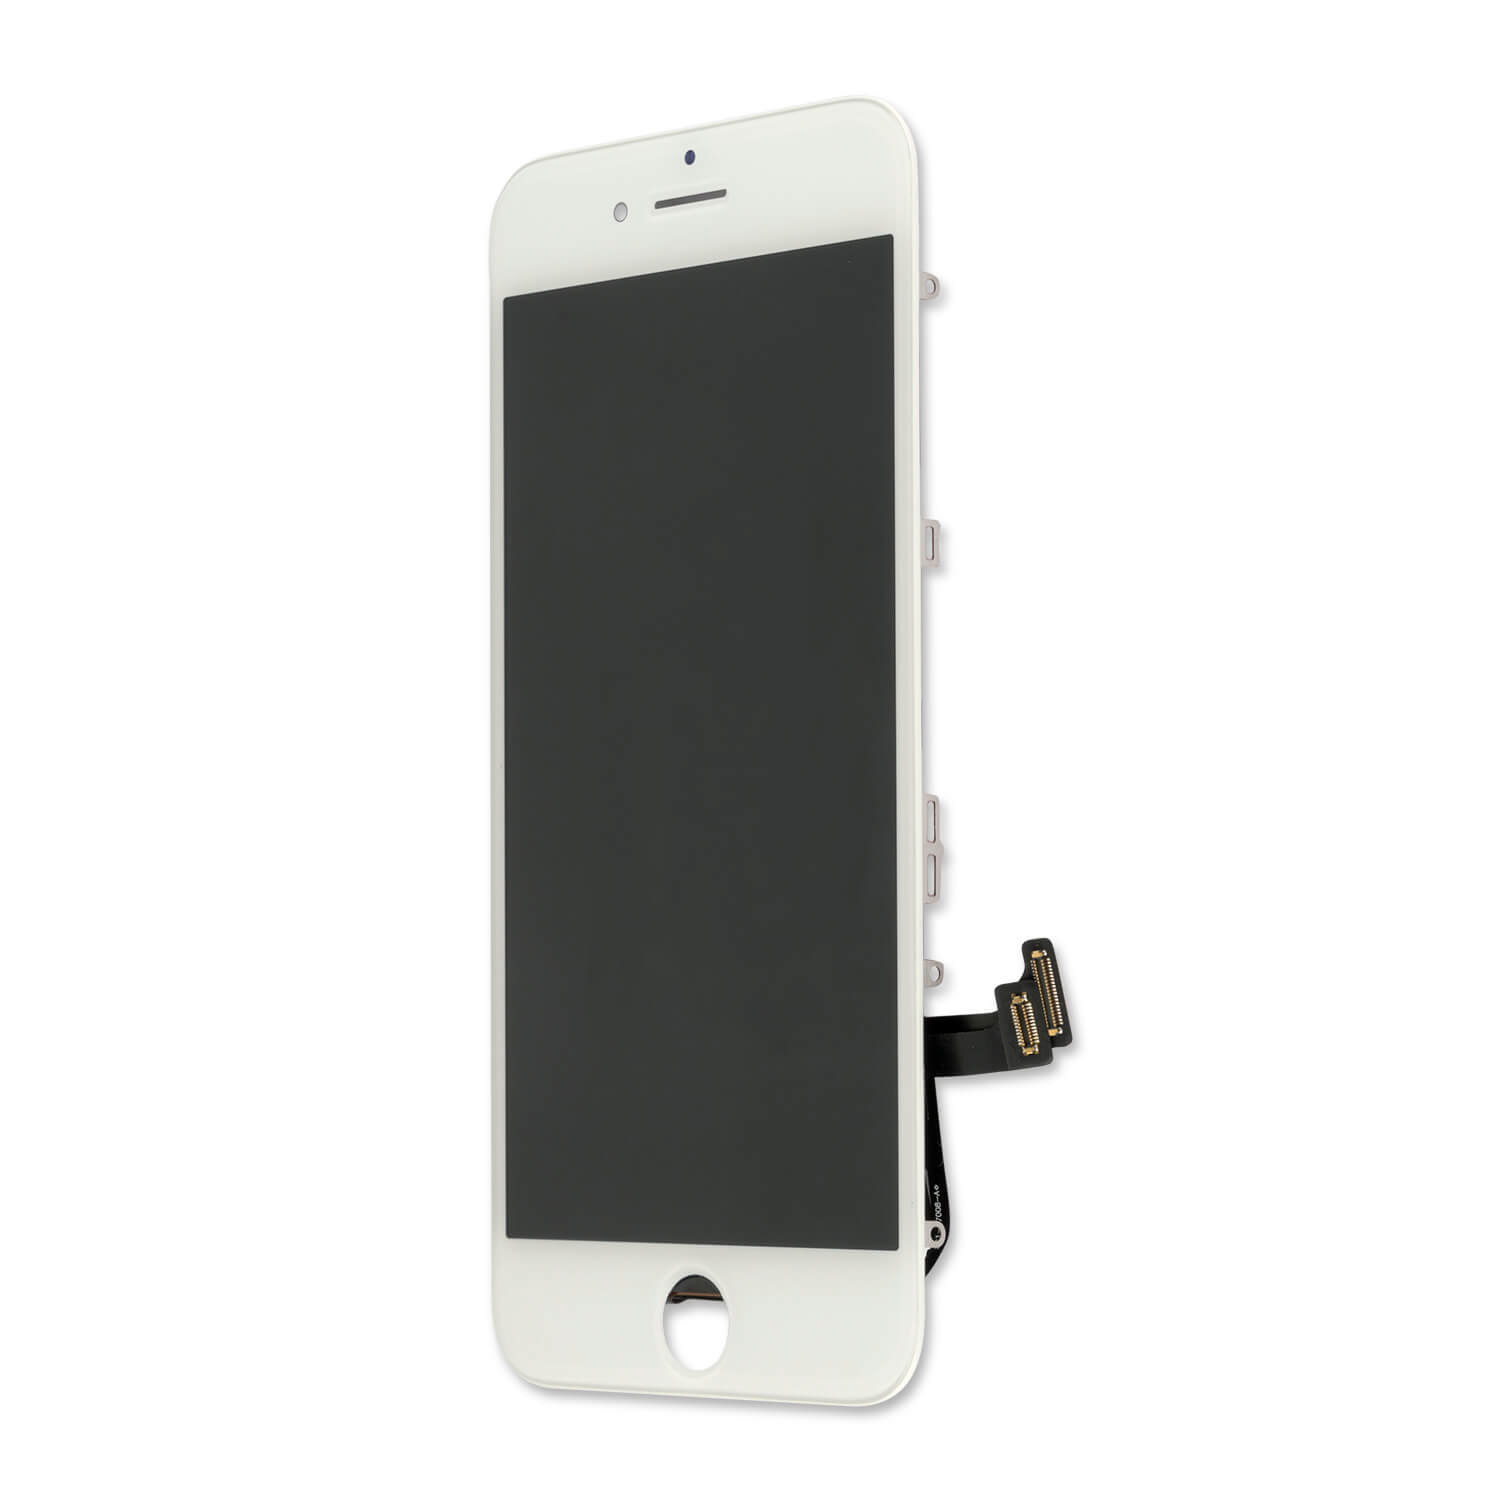 Apple Display Unit for iPhone 7 white (reconditioned)